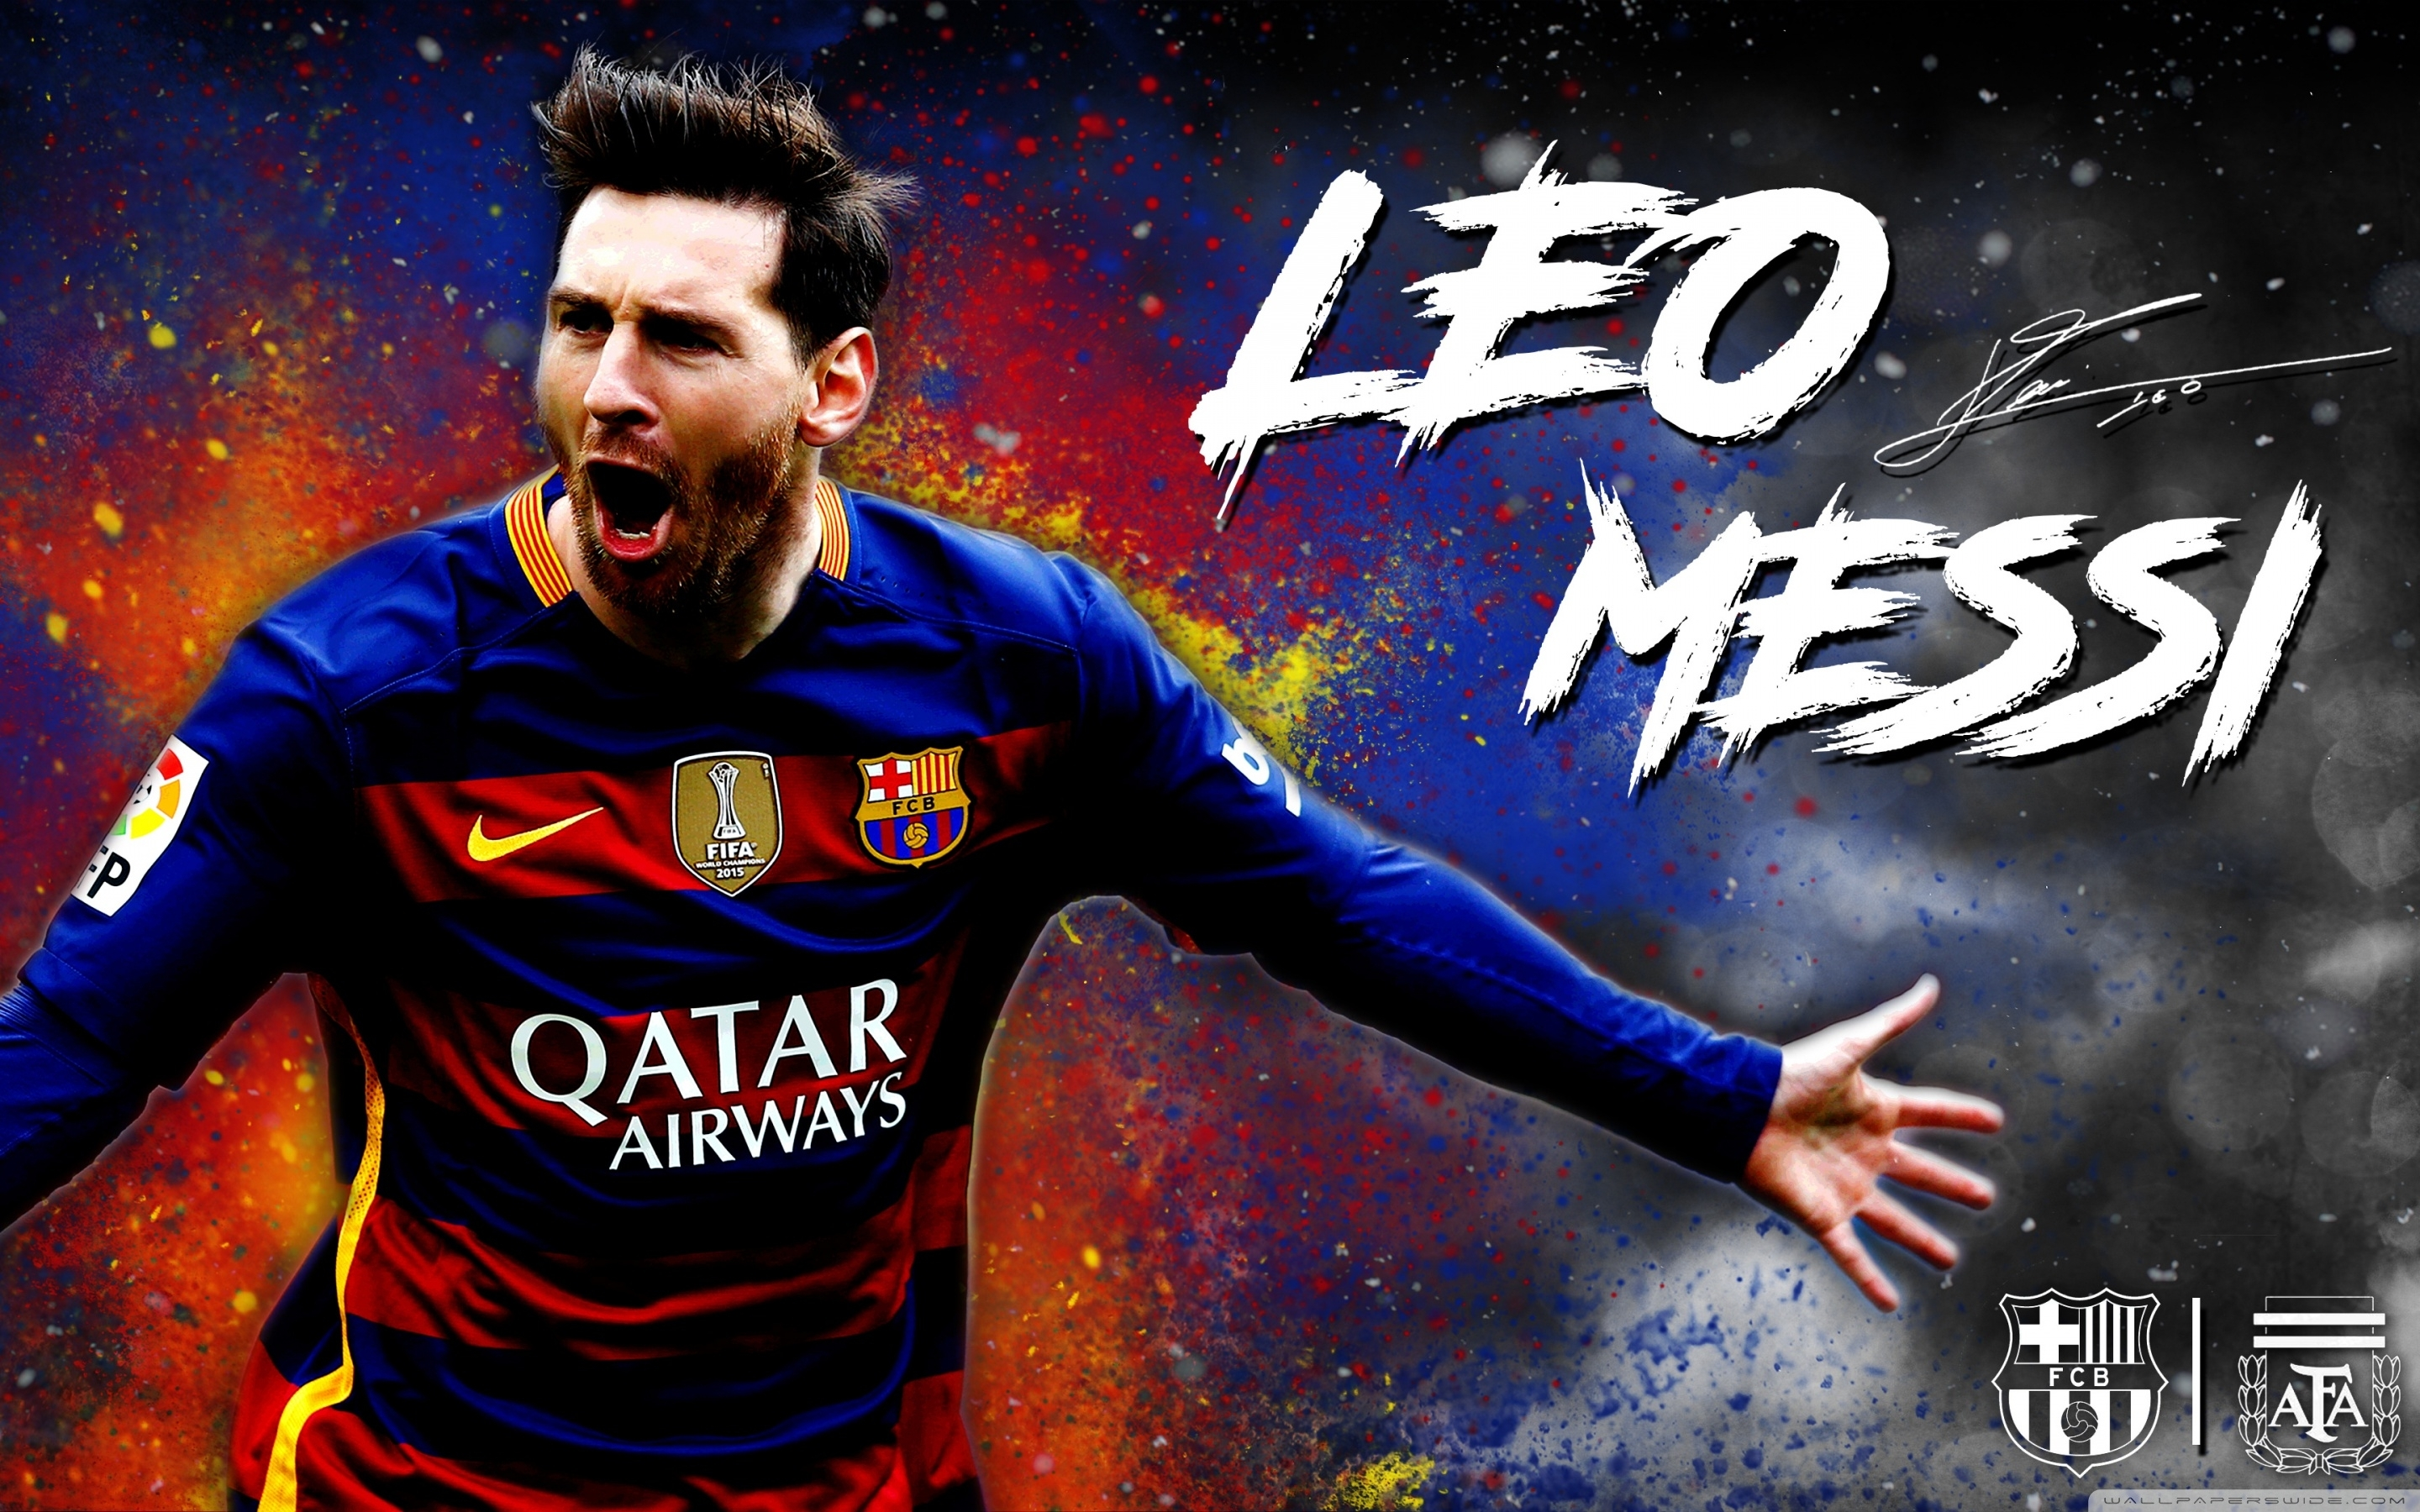 lionel messi barcelona wallpaper - 2016 ❤ 4k hd desktop wallpaper